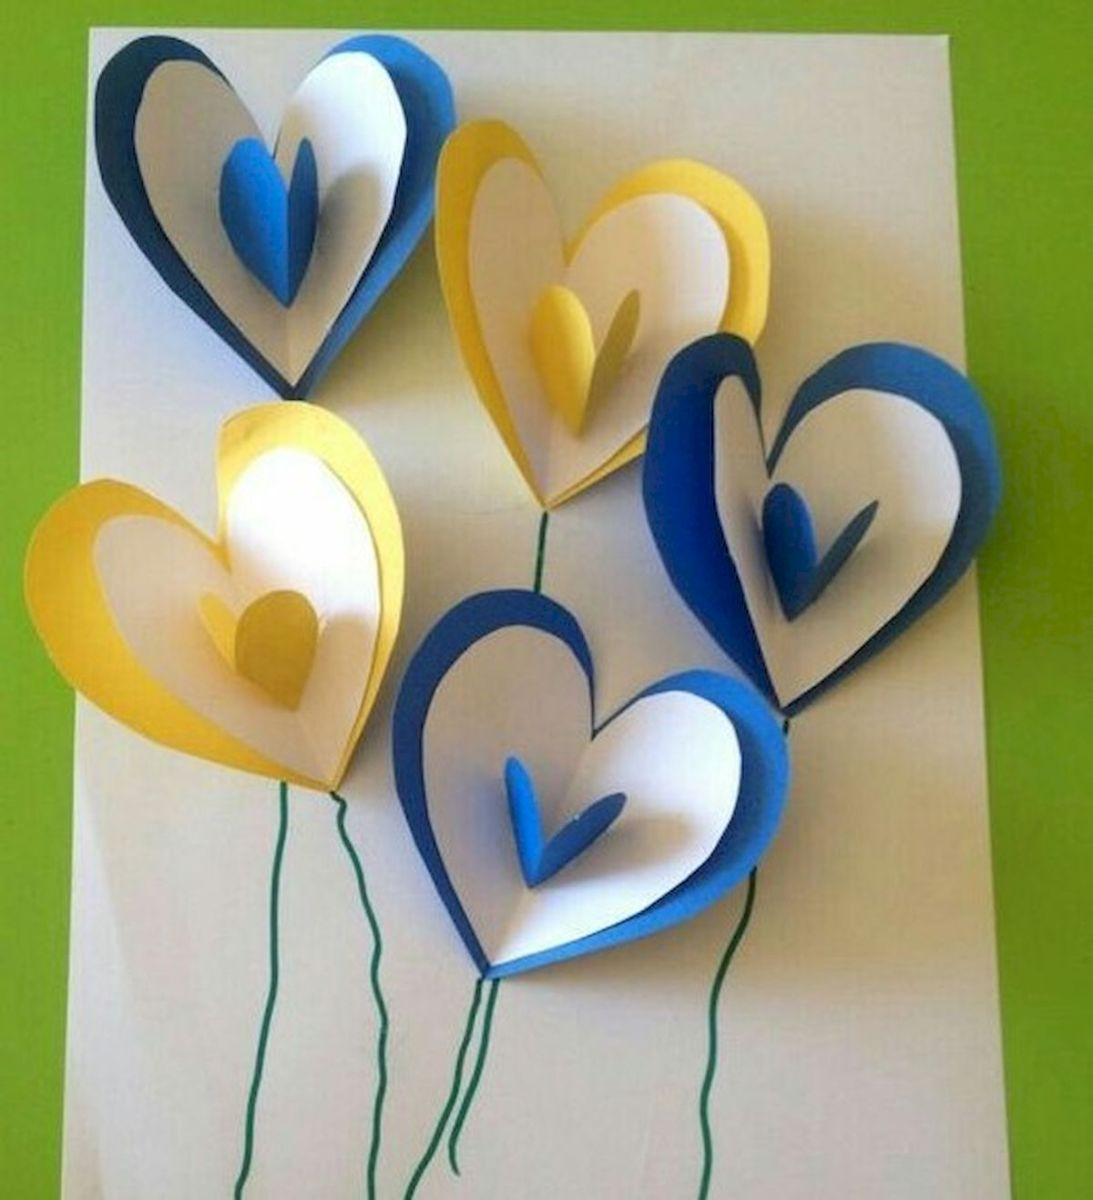 52 Fantastic Spring Crafts Ideas for Kids (51)